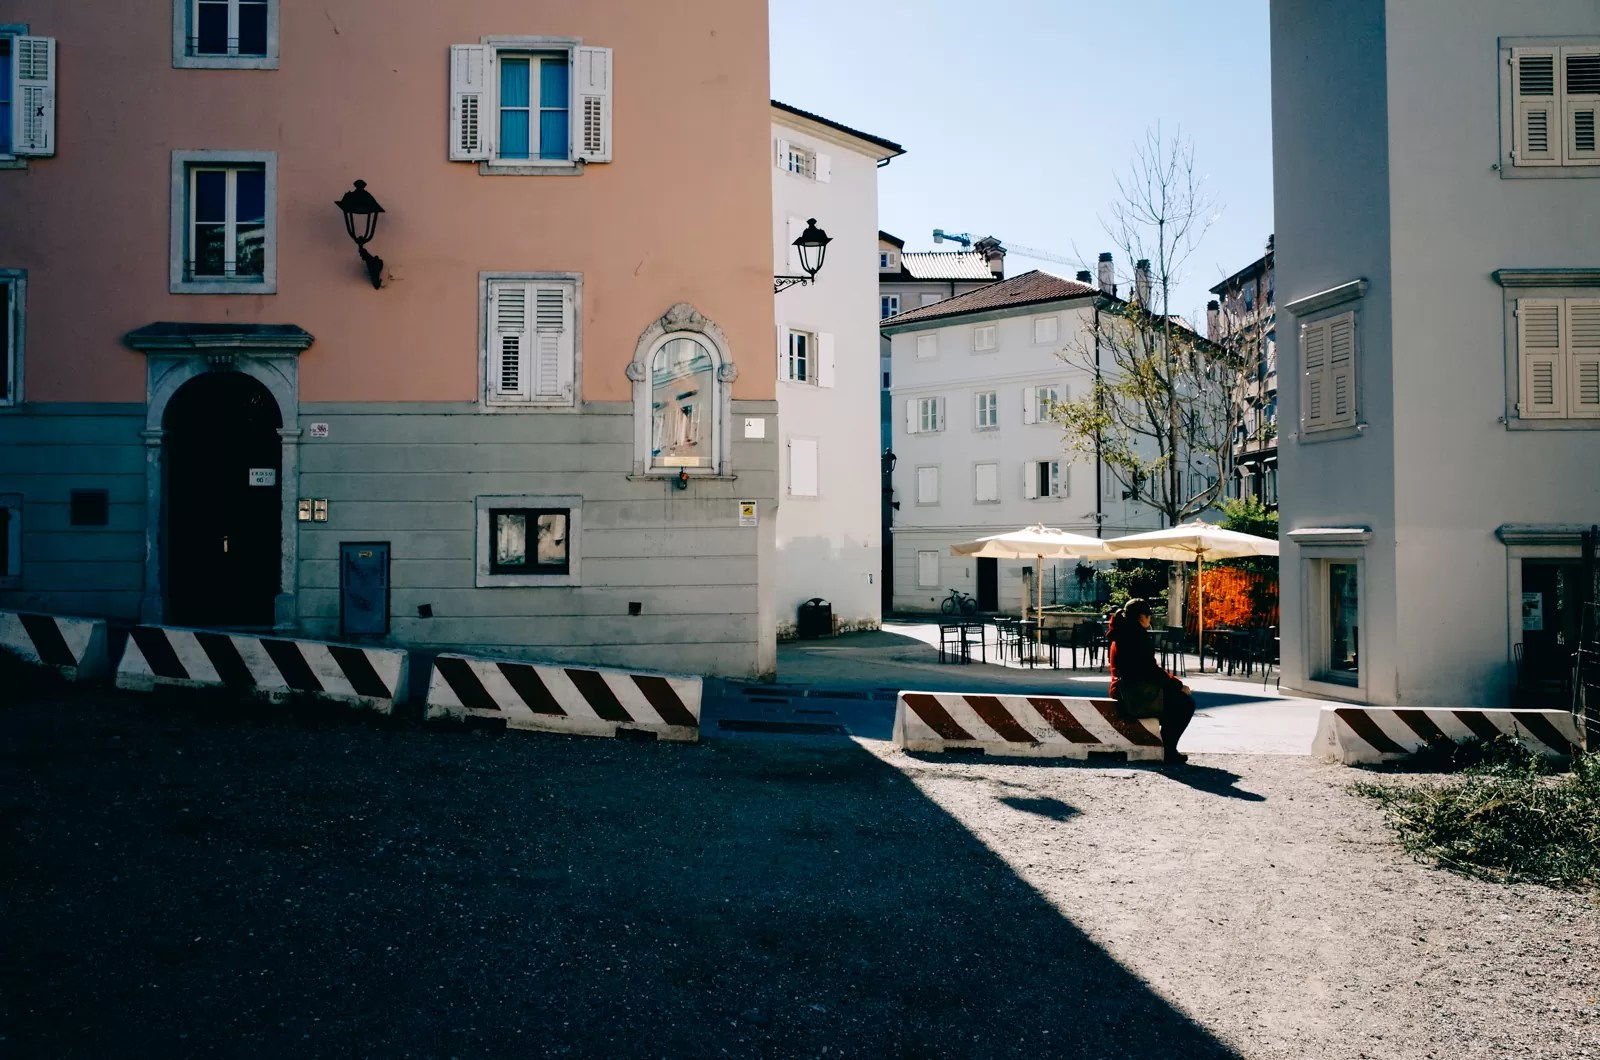 R0006766 - One Day in Trieste [Color Street Photography] - fotostreet.it